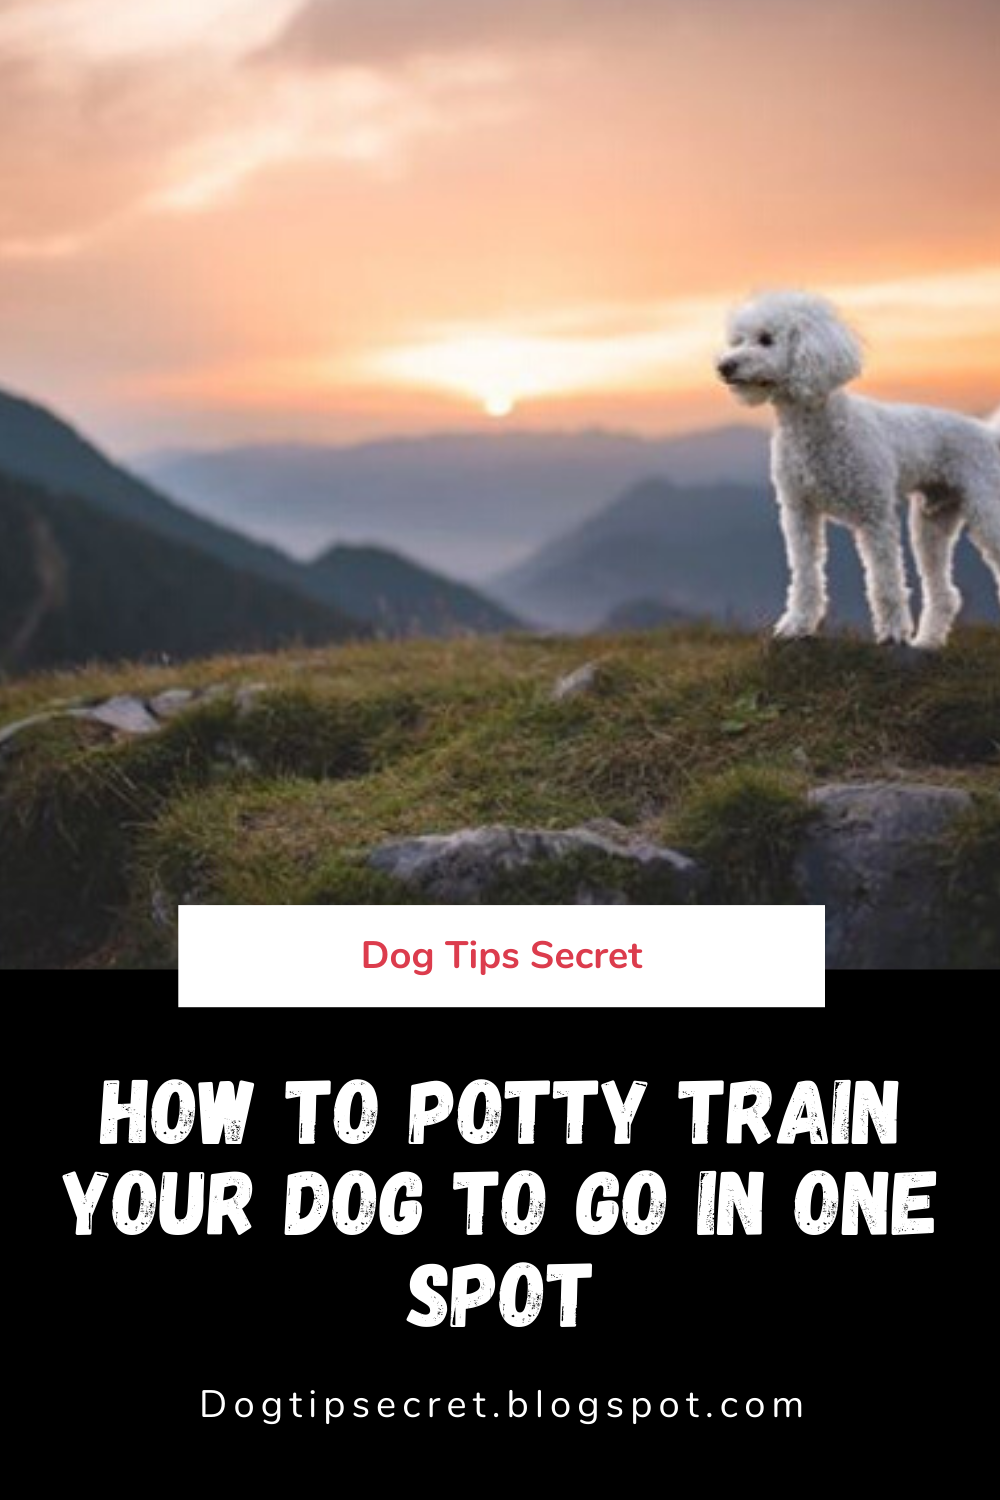 How To Potty Train Your Dog To Go In One Spot Dog Tips Secret In 2020 Training Your Dog House Training Puppies Online Dog Training